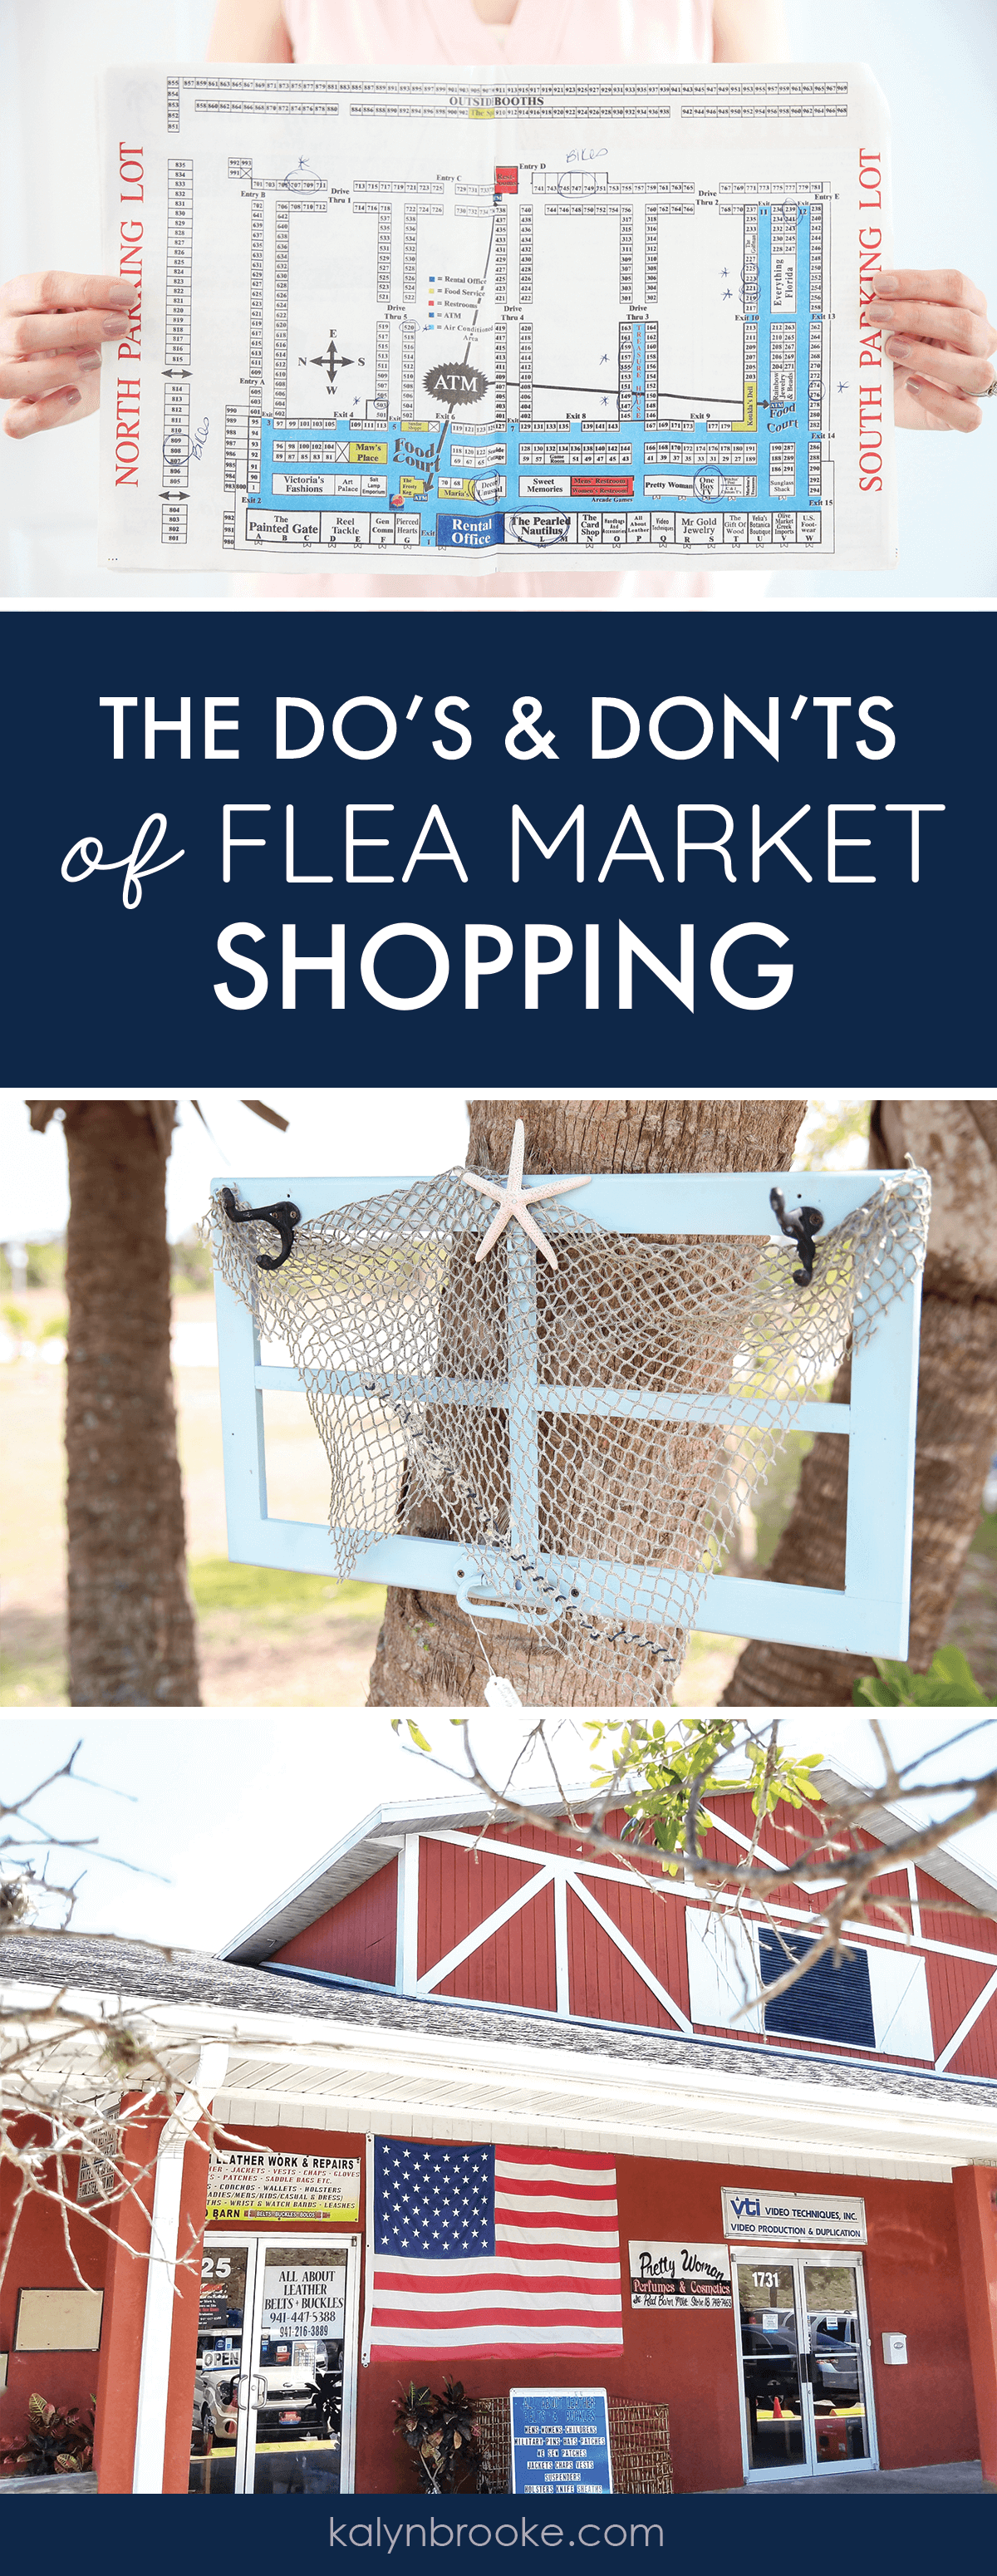 I've always avoided flea markets, but my mom insists on going {she loves them!}. Until I read this article and realized I was just doing it all wrong! There ARE treasures to be found at the #fleamarket--and armed with these tips, I'm going to be the one to initiate our next flea market shopping trip for once! #fleamarkettips #fleamarketshopping